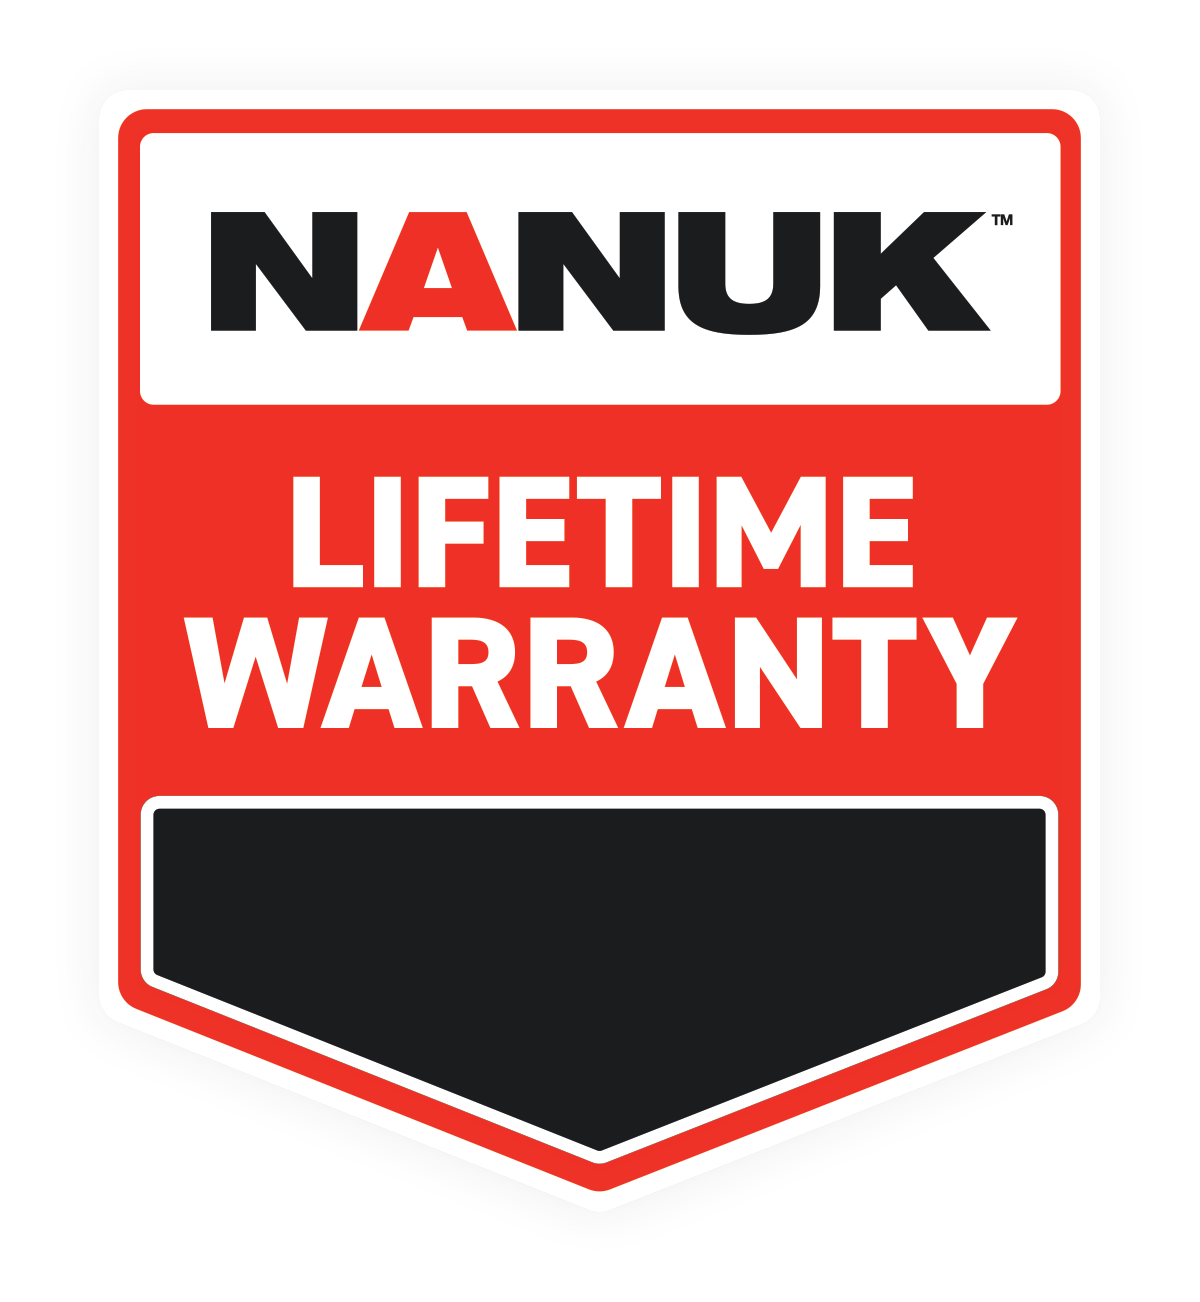 NANUK Lifetime Warranty